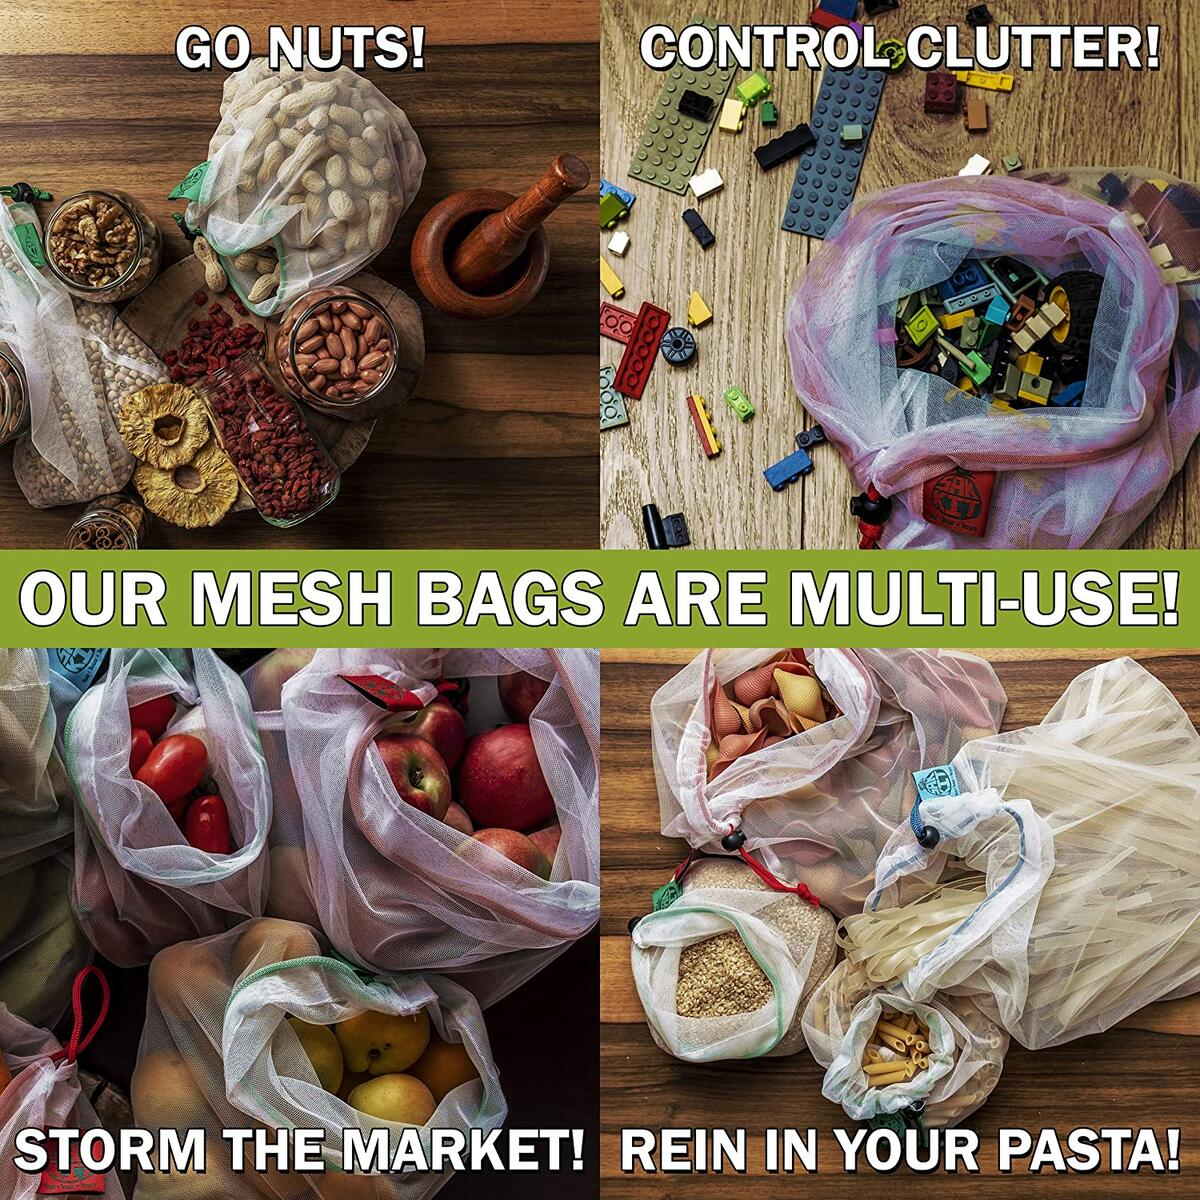 Reusable Grocery Bags Set of 12 PCS | Mesh bags with Tare Weight Tags | Foldable reusable bags and a bonus silicon handle | All the vegetable bags in this kit are made from recycled plastic